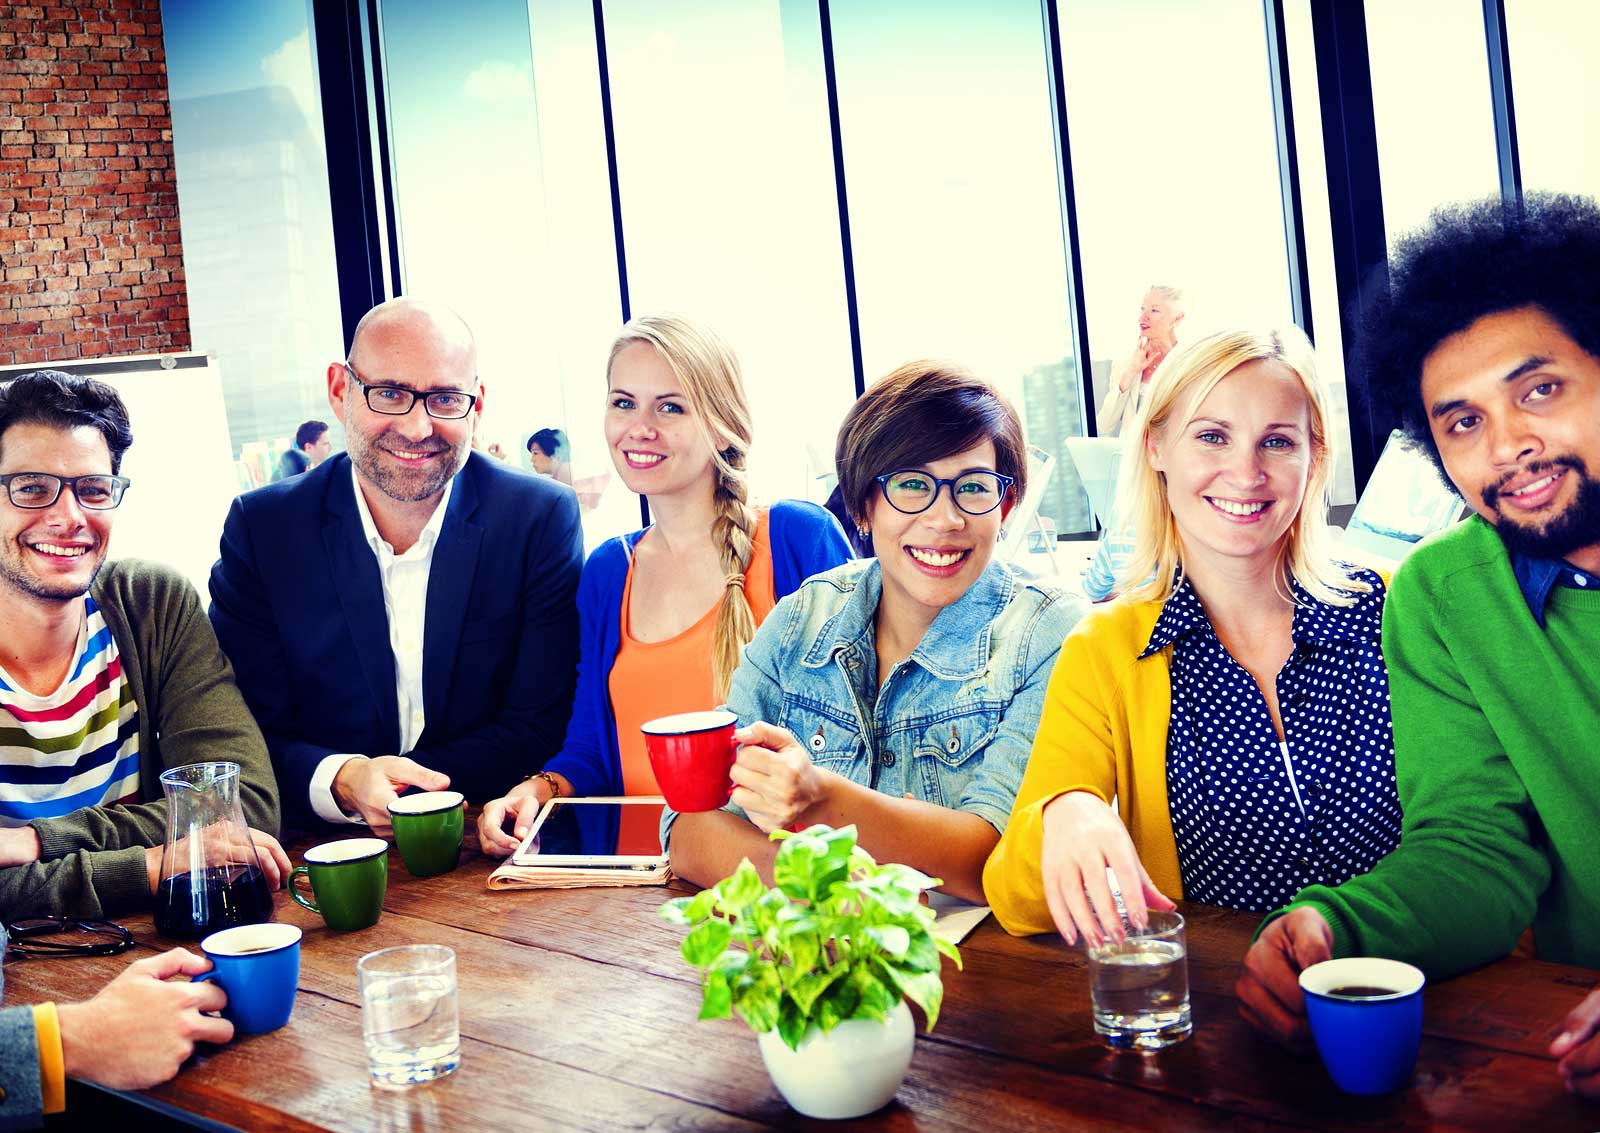 bigstock-Group-of-People-Cheerful-Team--100381634